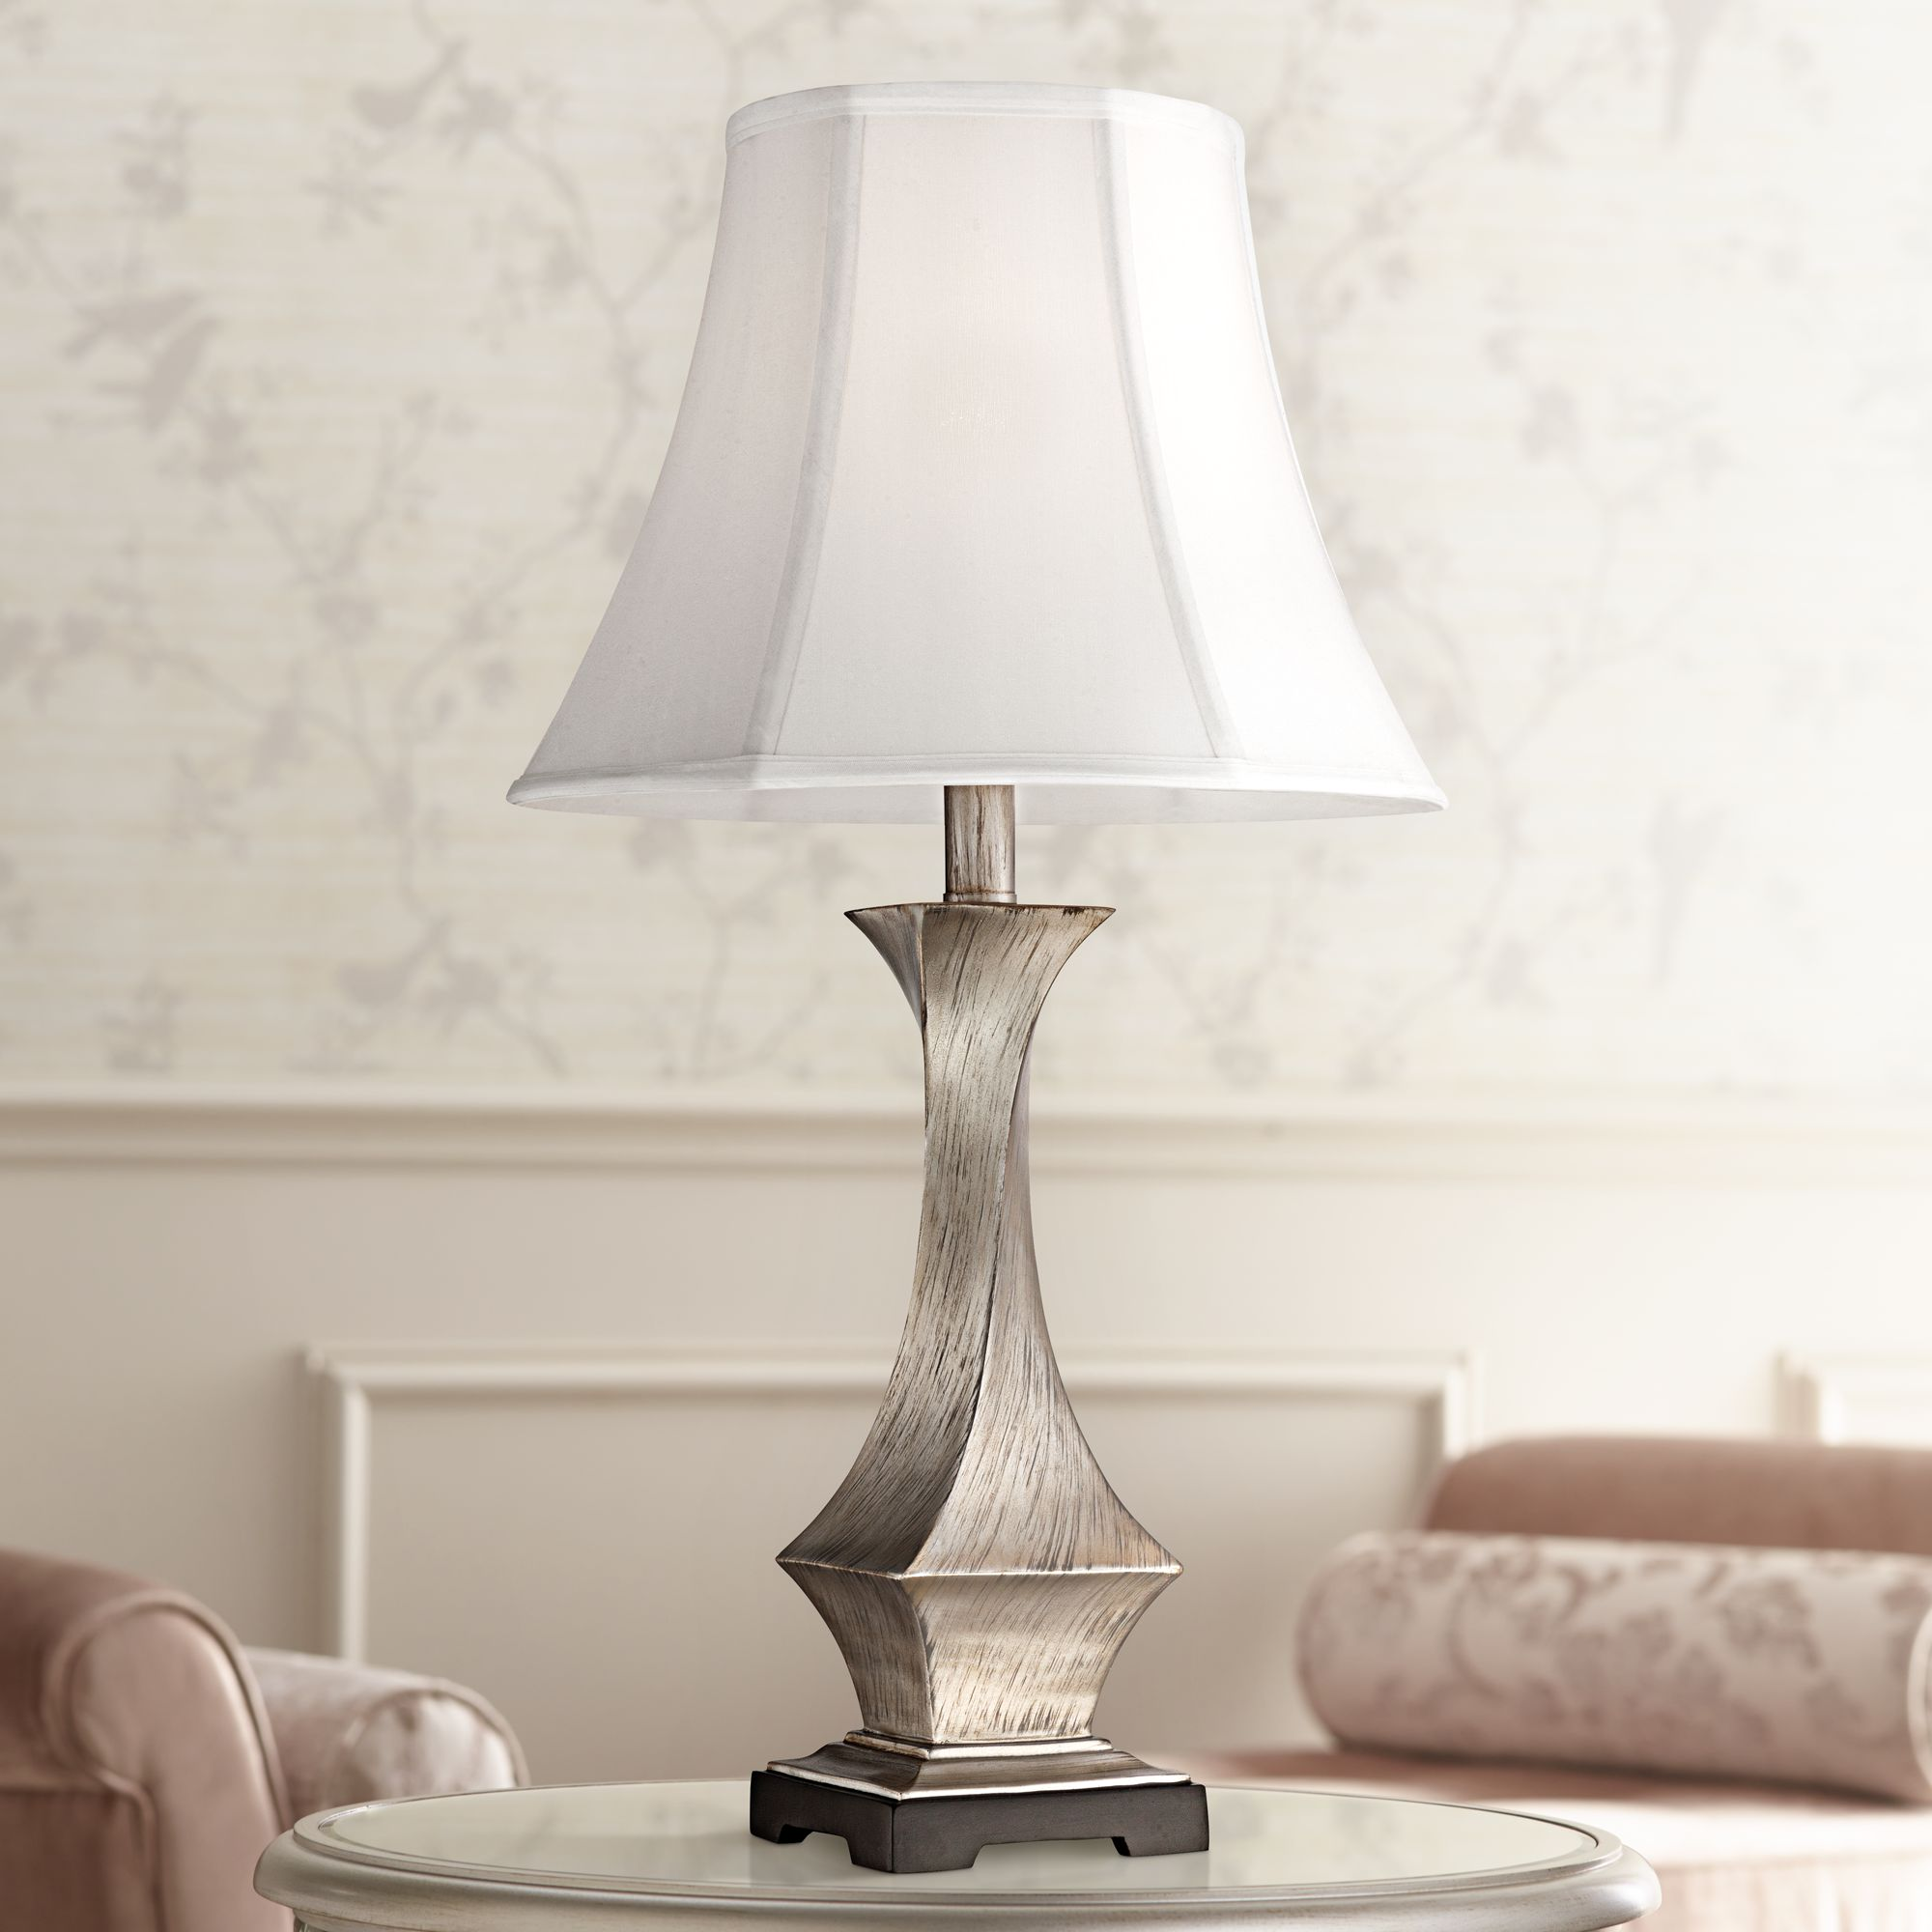 Regency Hill Modern Table Lamp Silver Leaf Twist White Bell Shade for Living Room Family Bedroom Bedside Nightstand Office